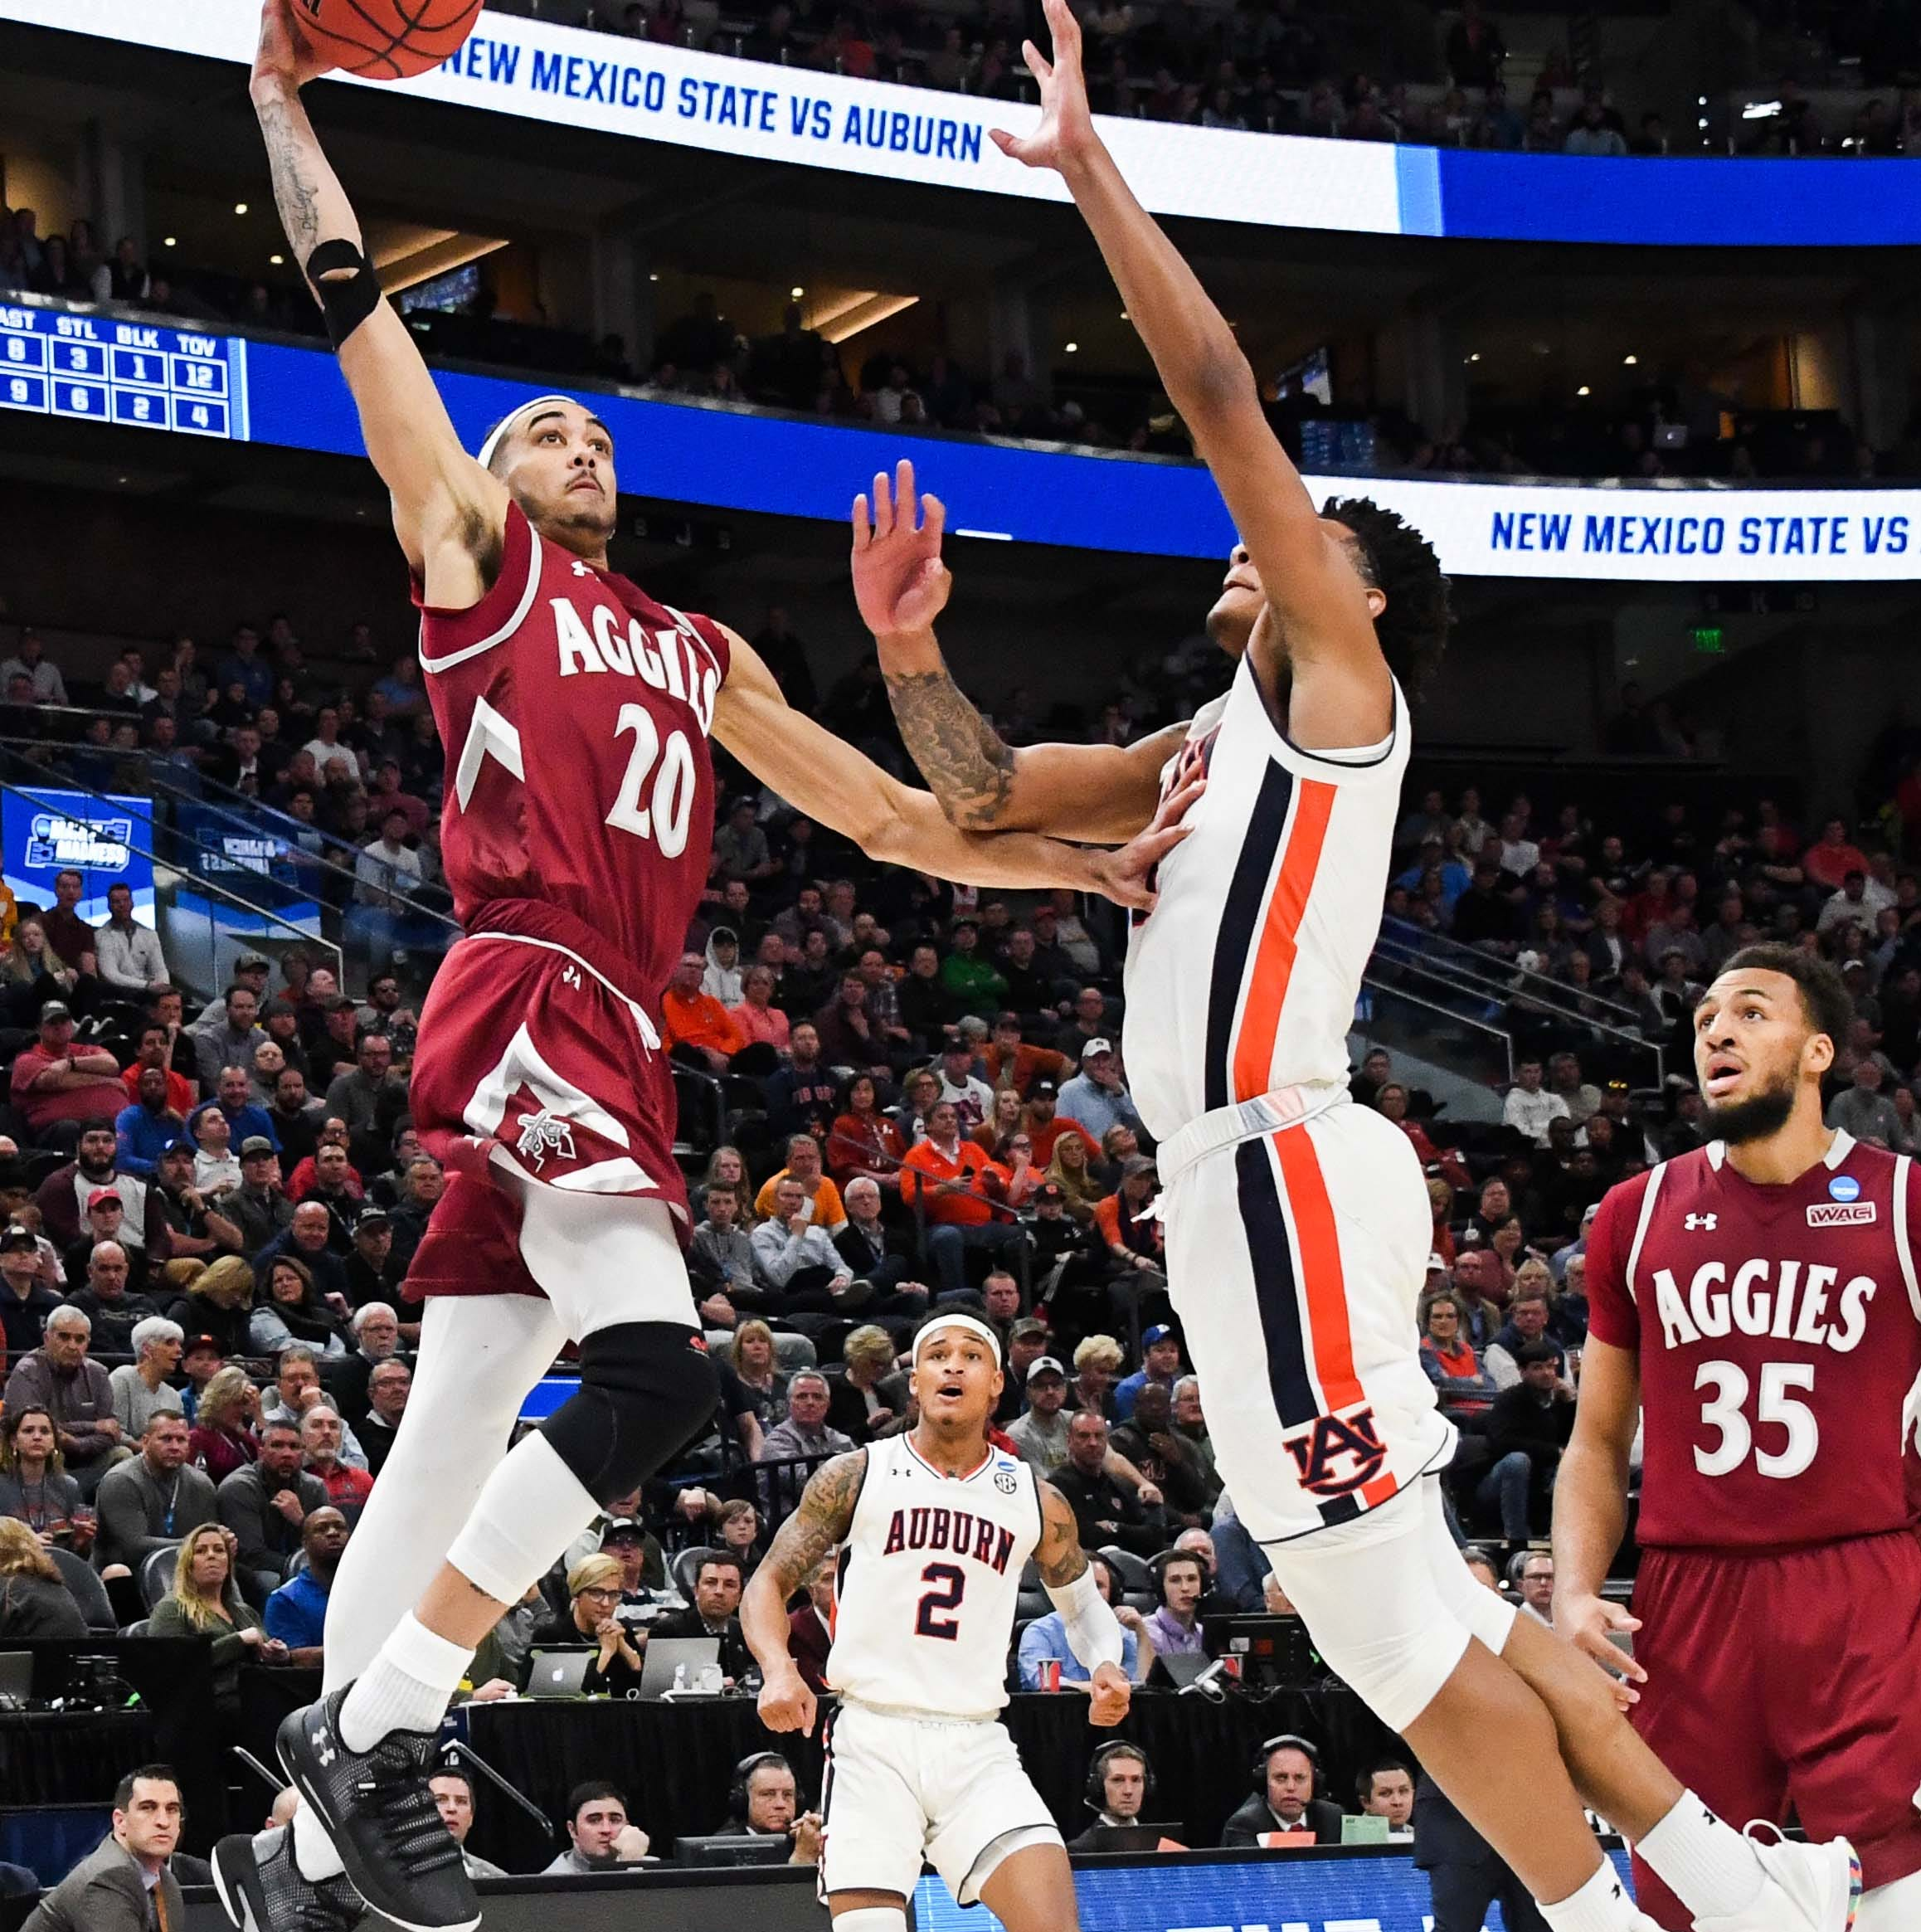 Chris Jans looks to add right pieces to experienced Aggies roster